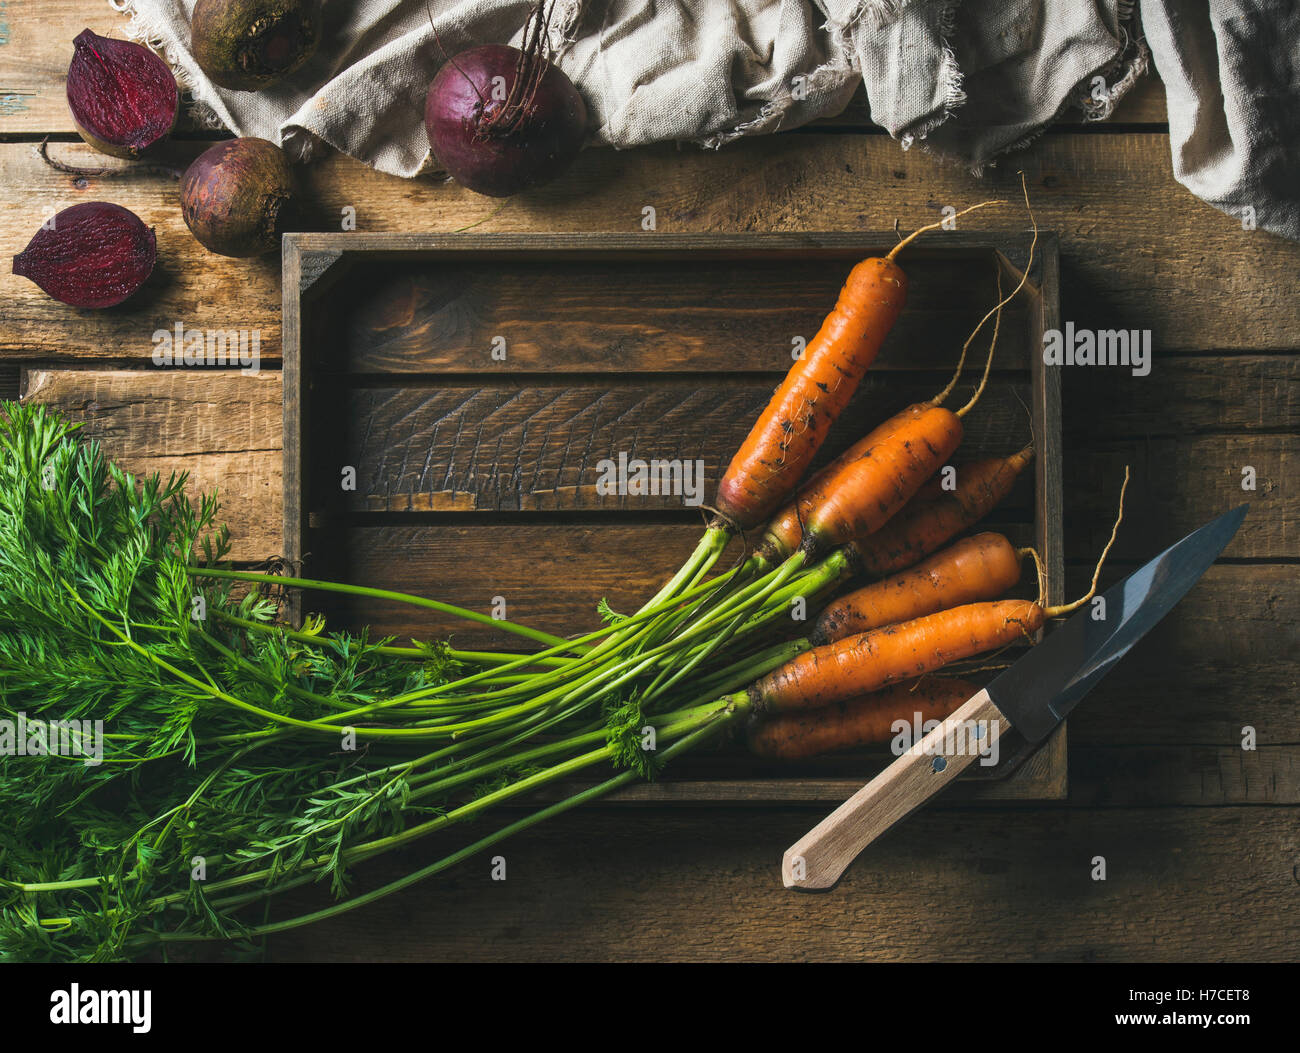 Healthy food cooking background. Vegetable ingredients. Fresh garden carrots and beetroots in wooden tray over rustic - Stock Image